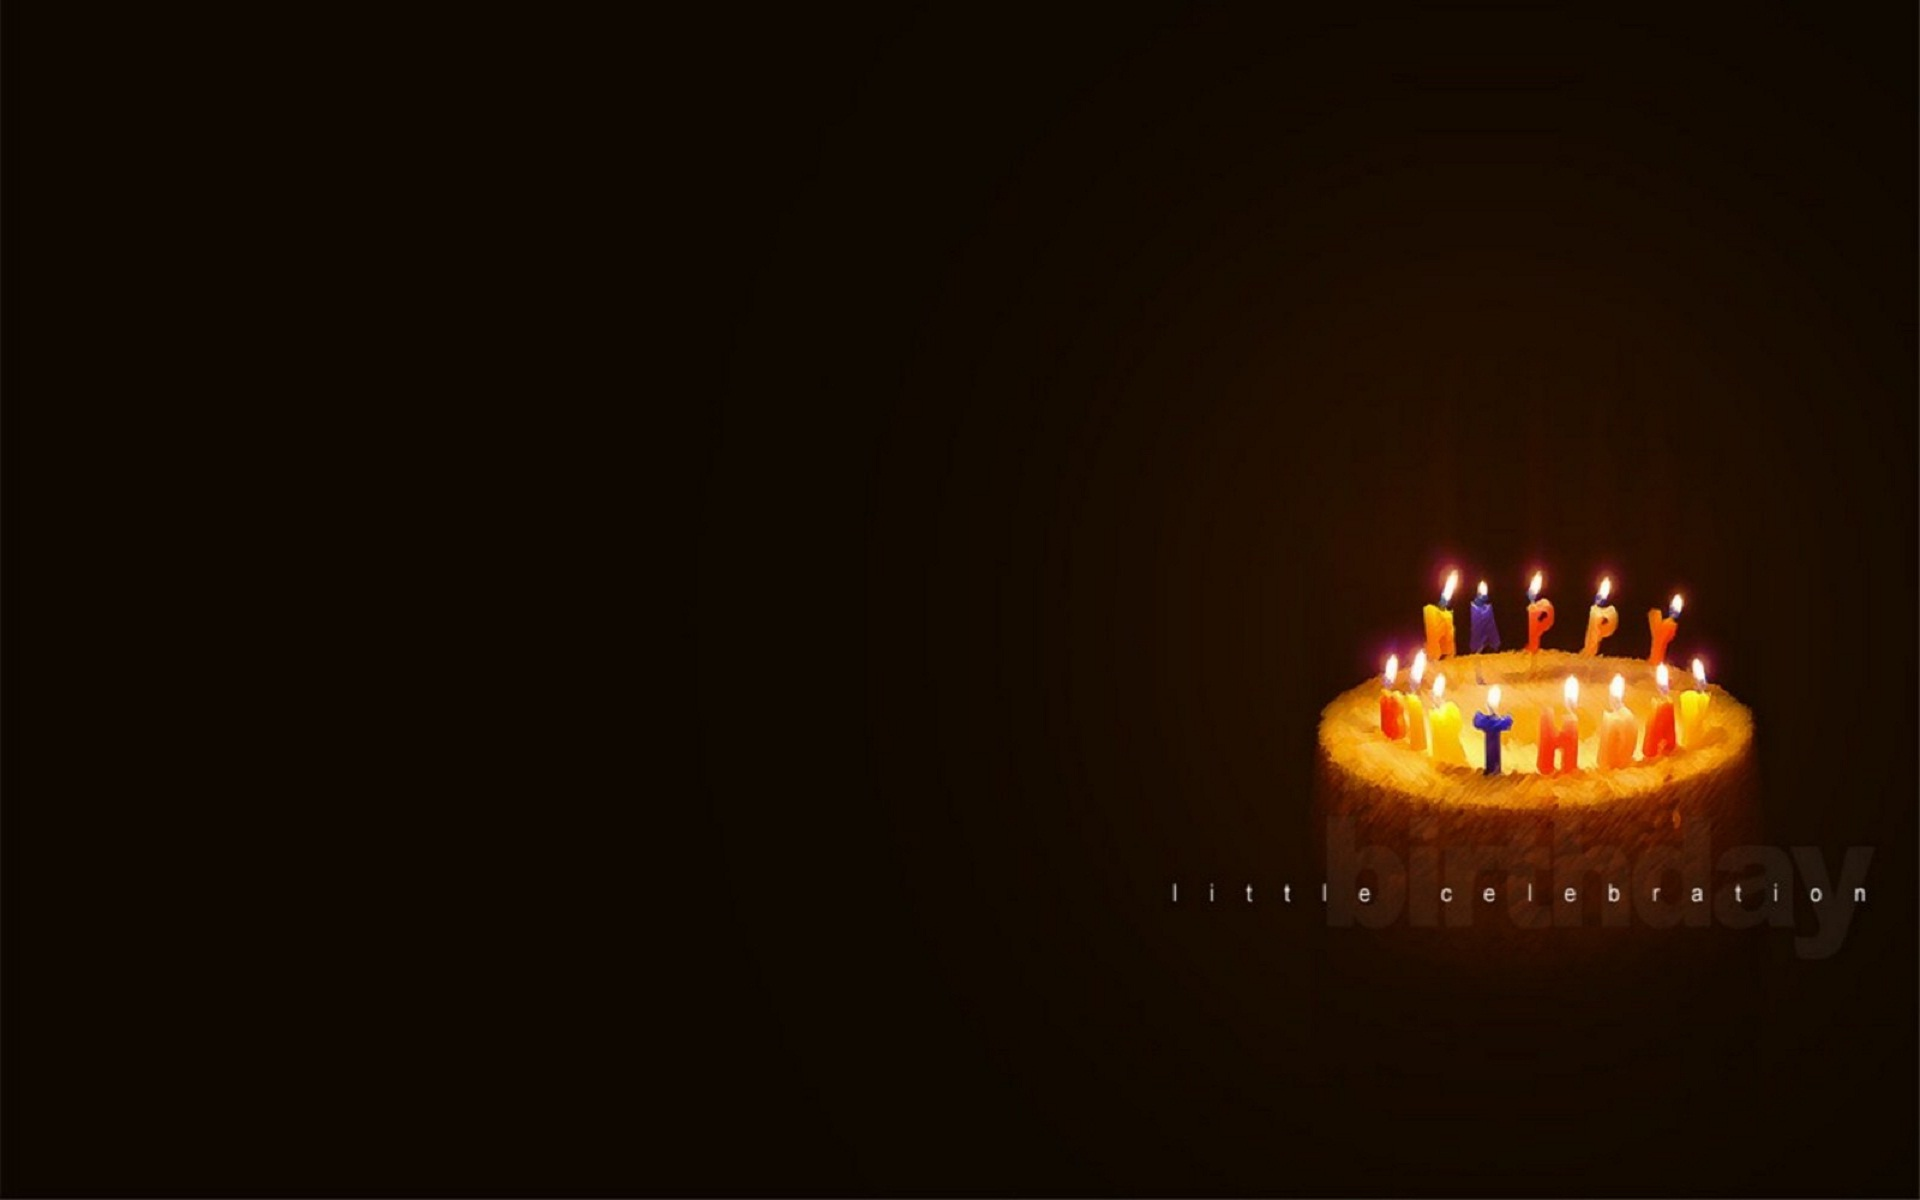 birthday wishes wallpaper hd ; Friends-birthday-wishes-mobile-HD-wallpapers